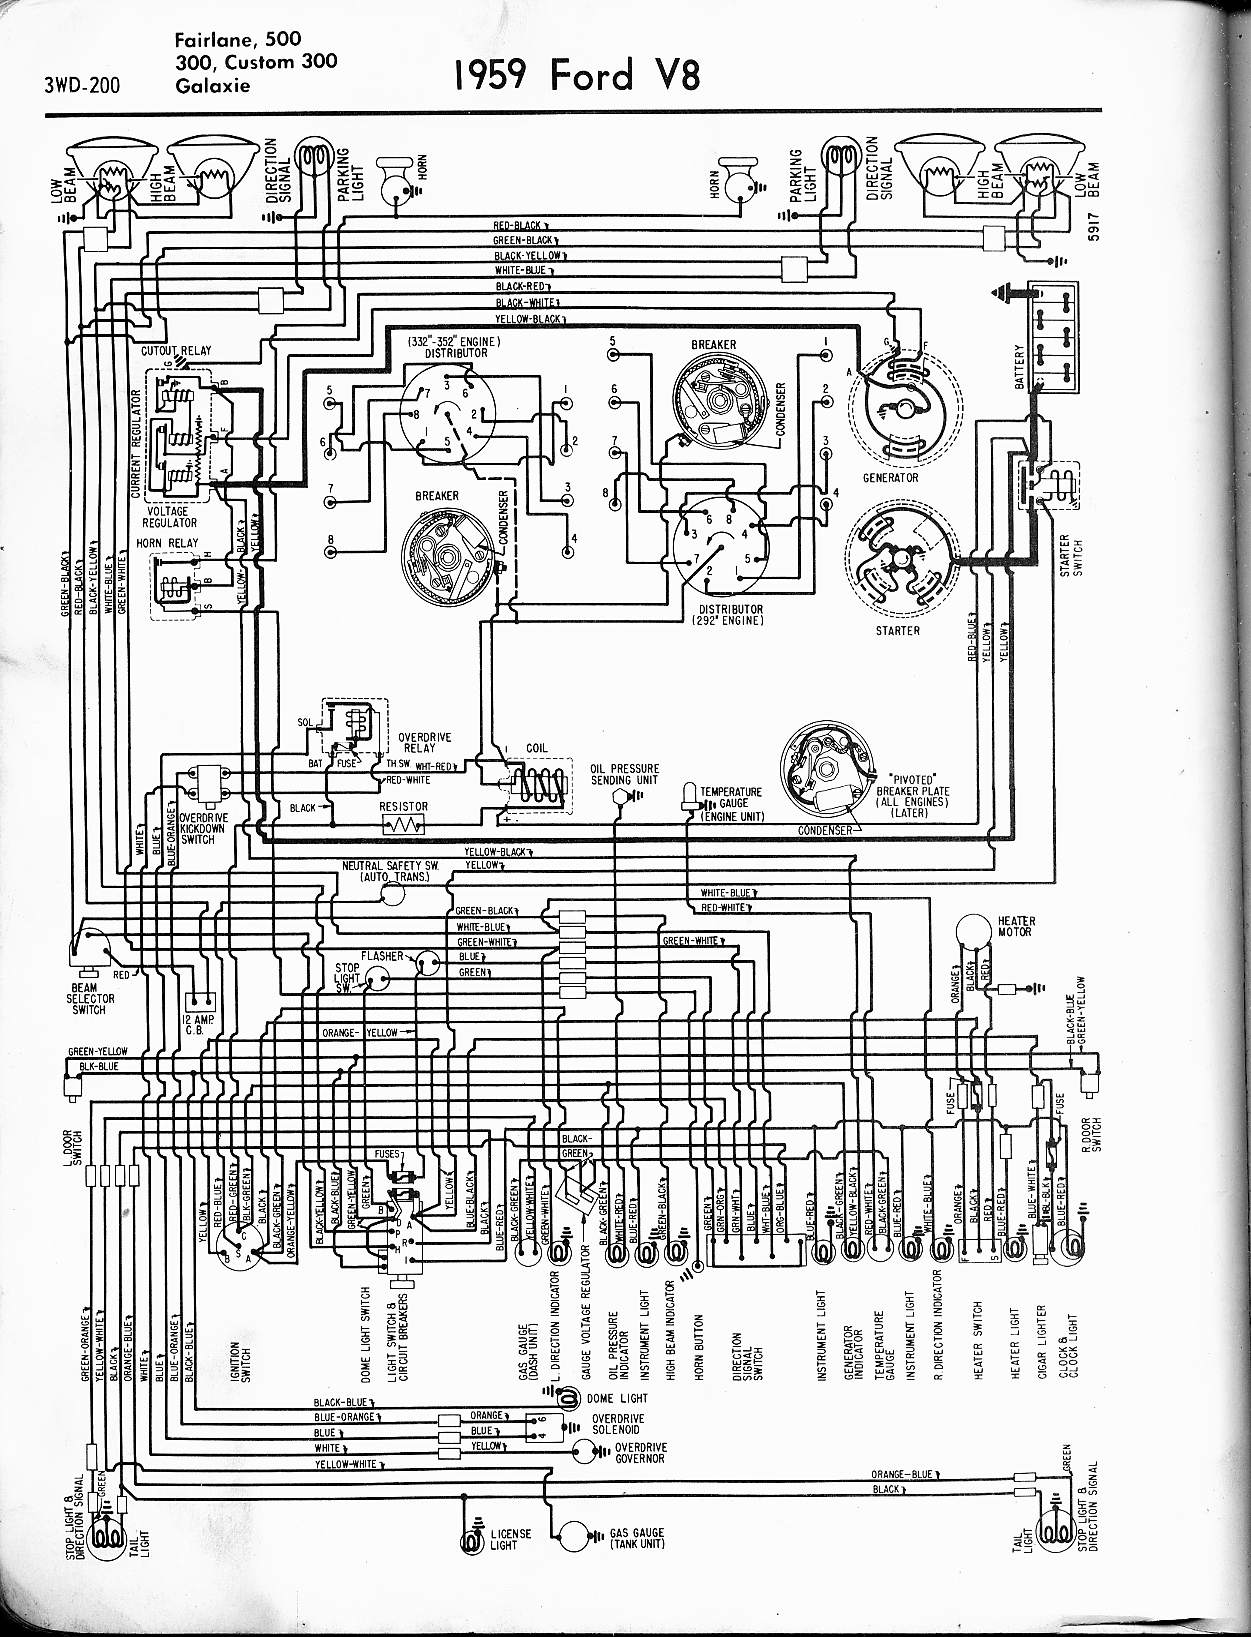 hight resolution of 1956 ford fairlane wiring harness wiring diagram perfomanceford fairlane wiring harness wiring diagram fascinating 1956 ford